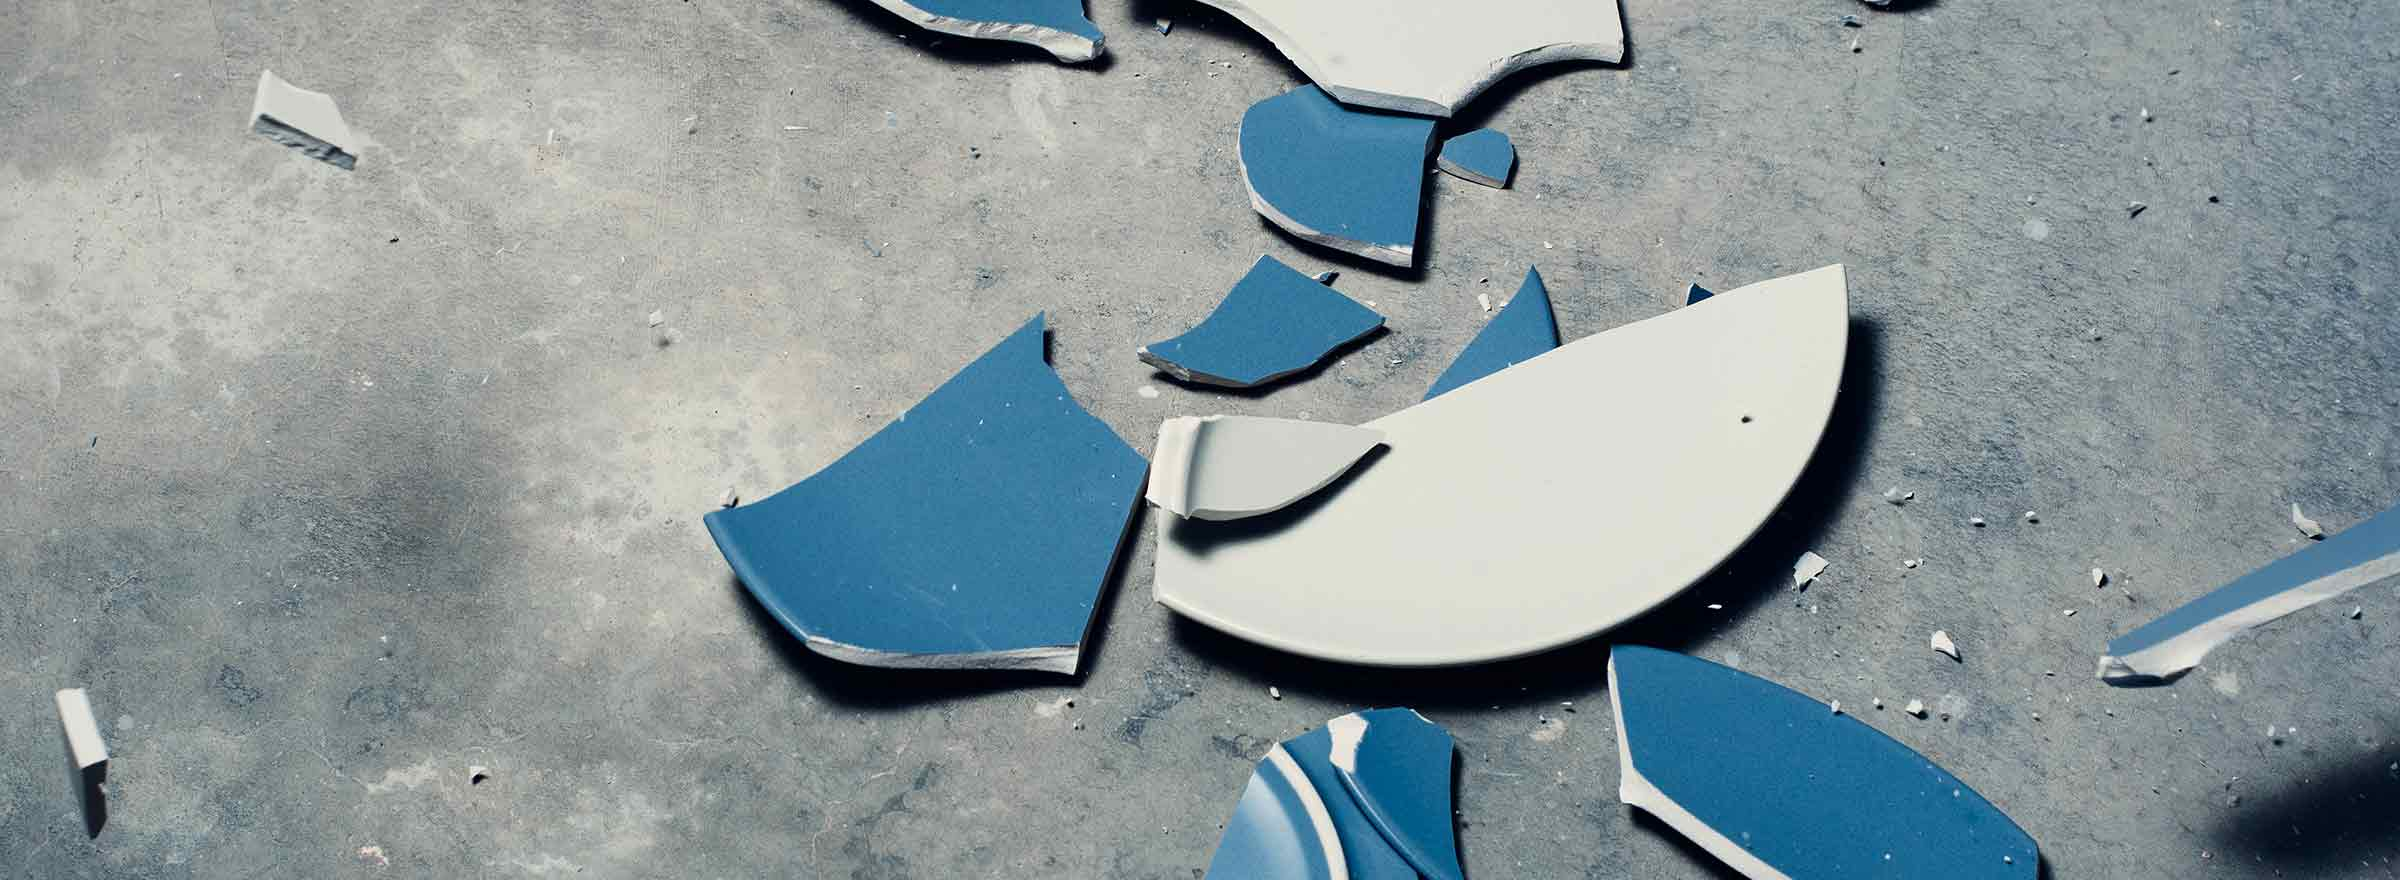 broken dishes on the floor, symbolizing how one nonprofit uses dell computers to fight domestic abuse